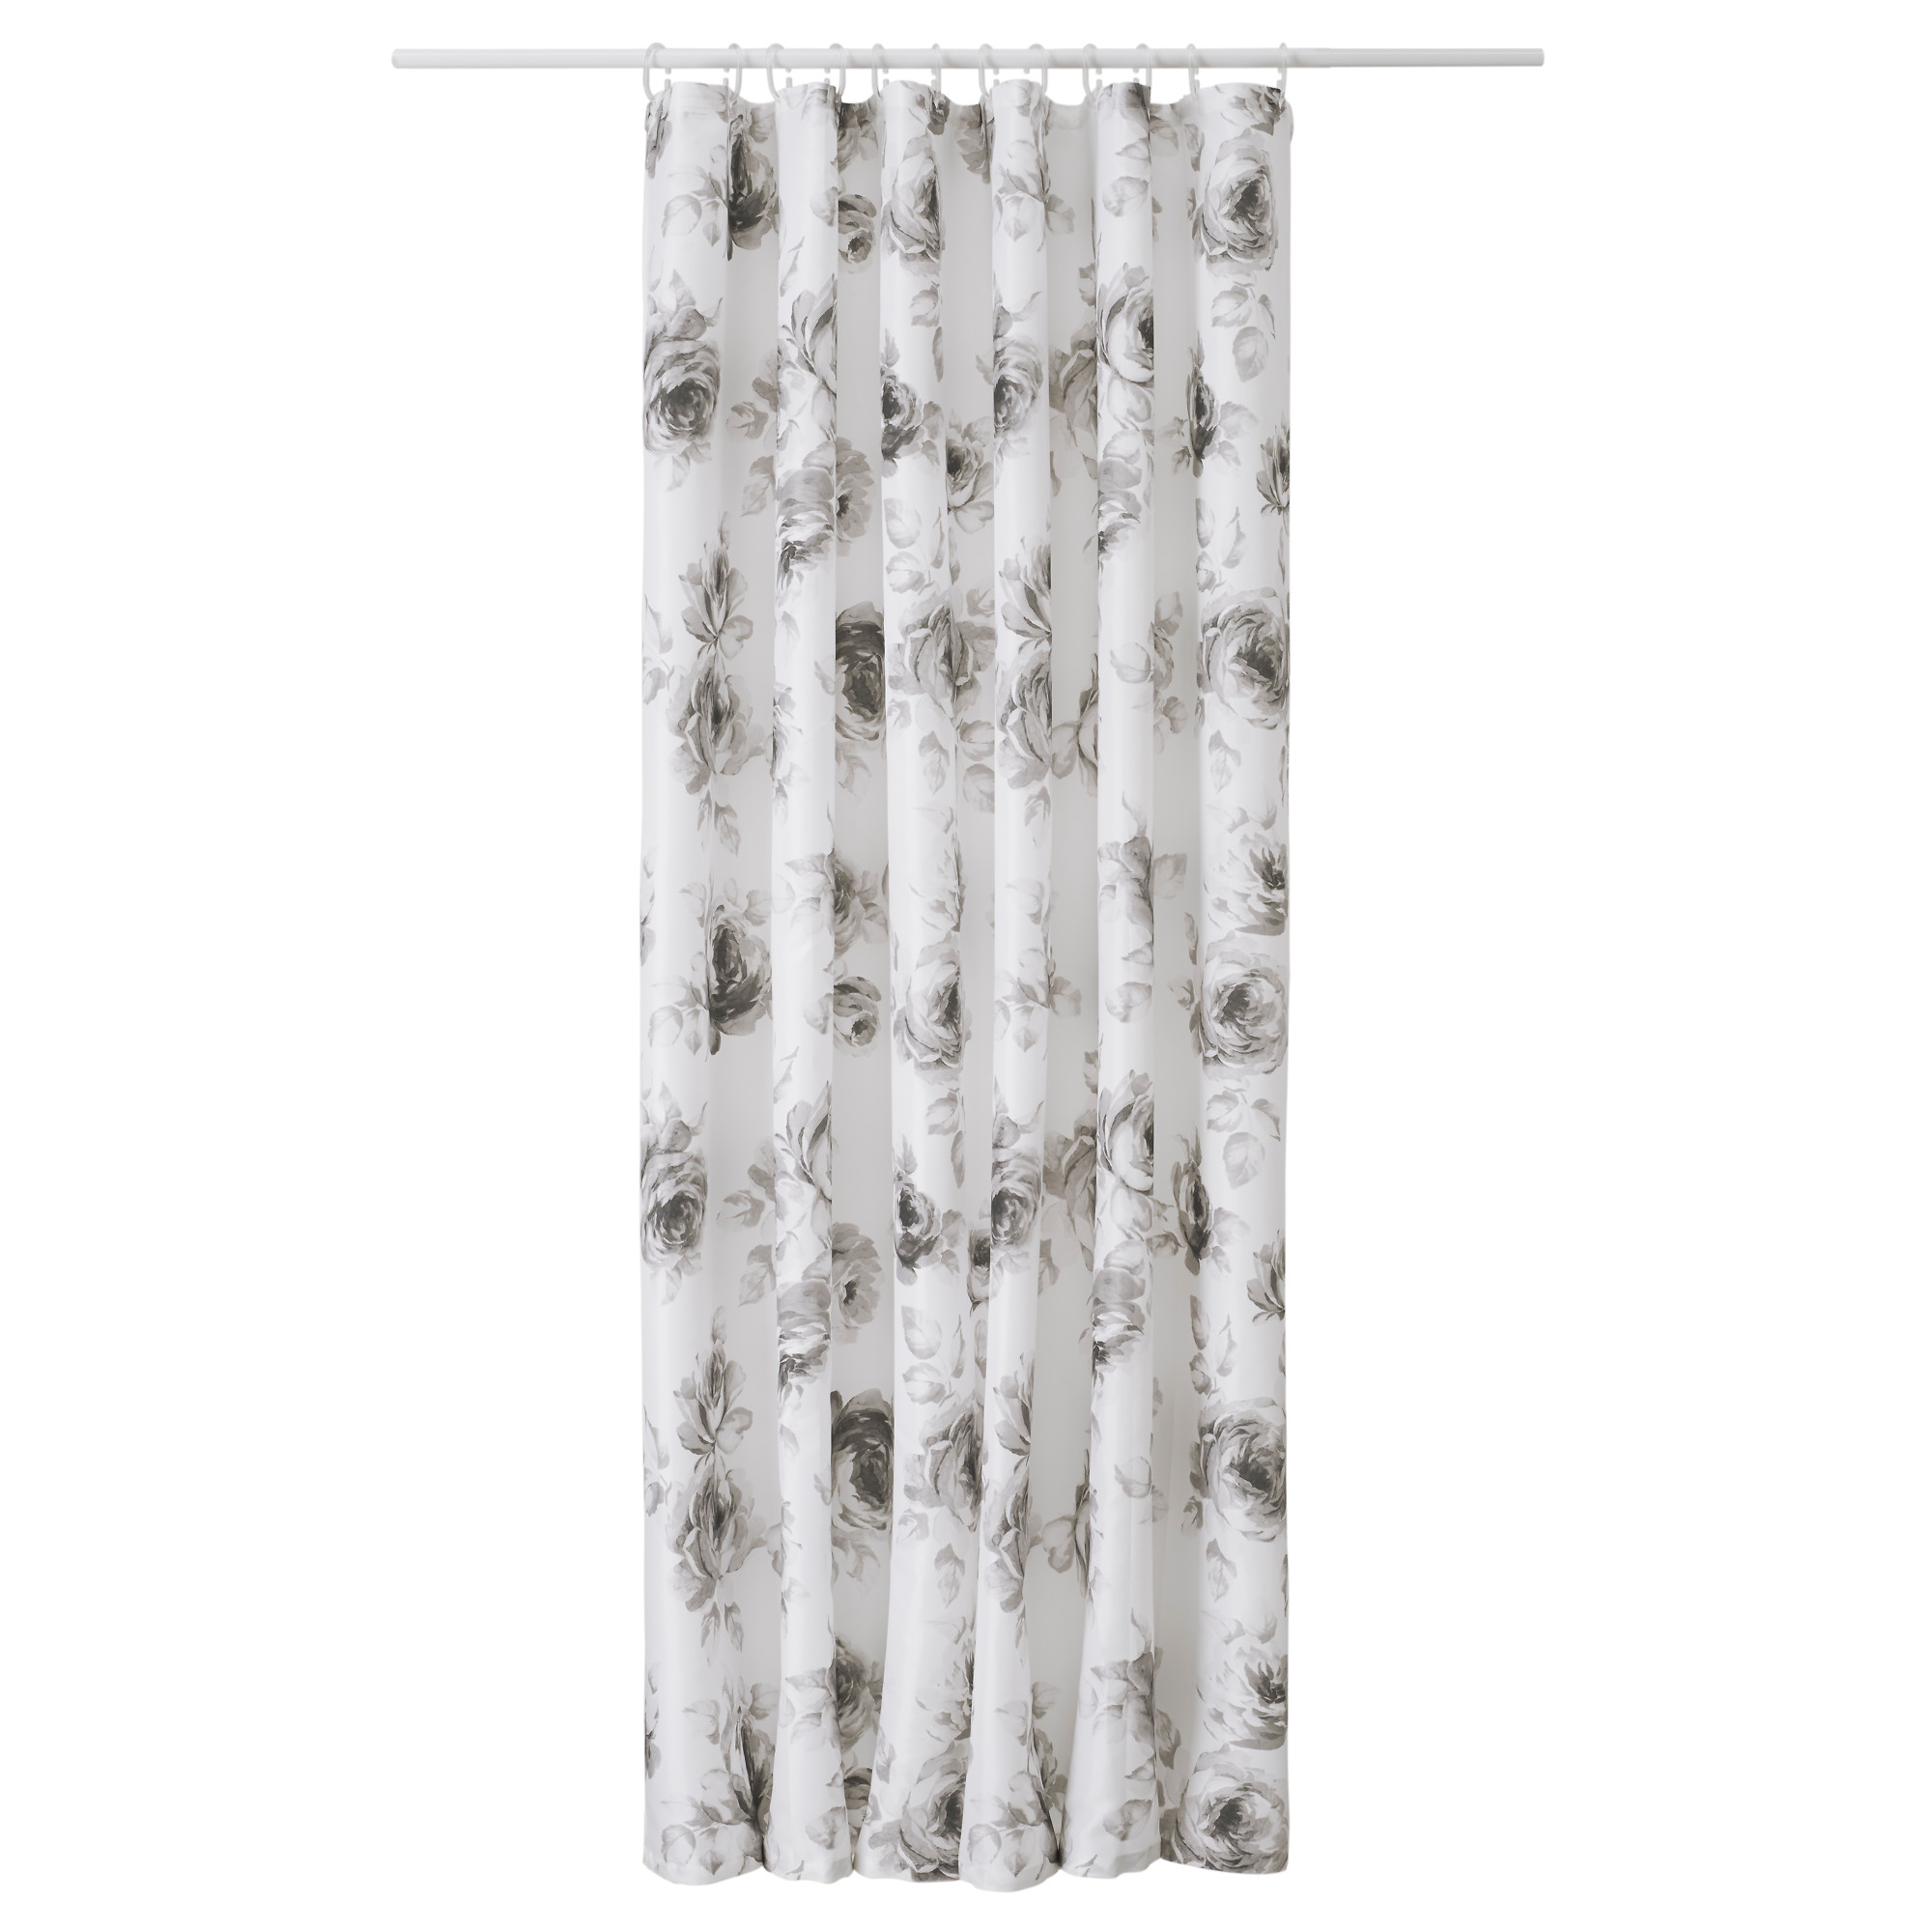 Ikea Shower Curtain for Best Your Bathroom Decoration: Single Stall Shower Curtain | Transparent Shower Curtain | Ikea Shower Curtain